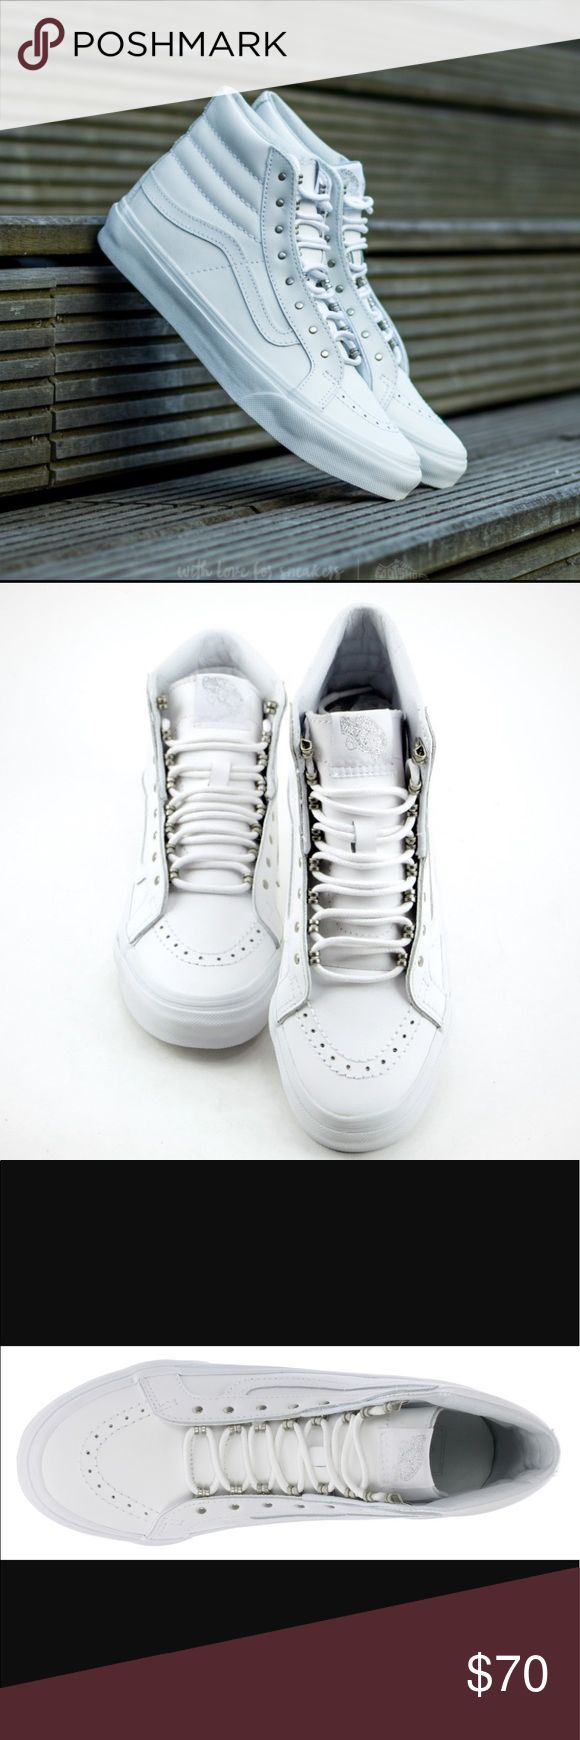 😍SALE😍SK8-Hi slim leather metal white vans Leather Slimmed down version of the legendary Vans lace-up high top Features metal rivets in place of eyelets Leather uppers Padded collars for support and flexibility Signature rubber waffle outsoles Vans Shoes Sneakers